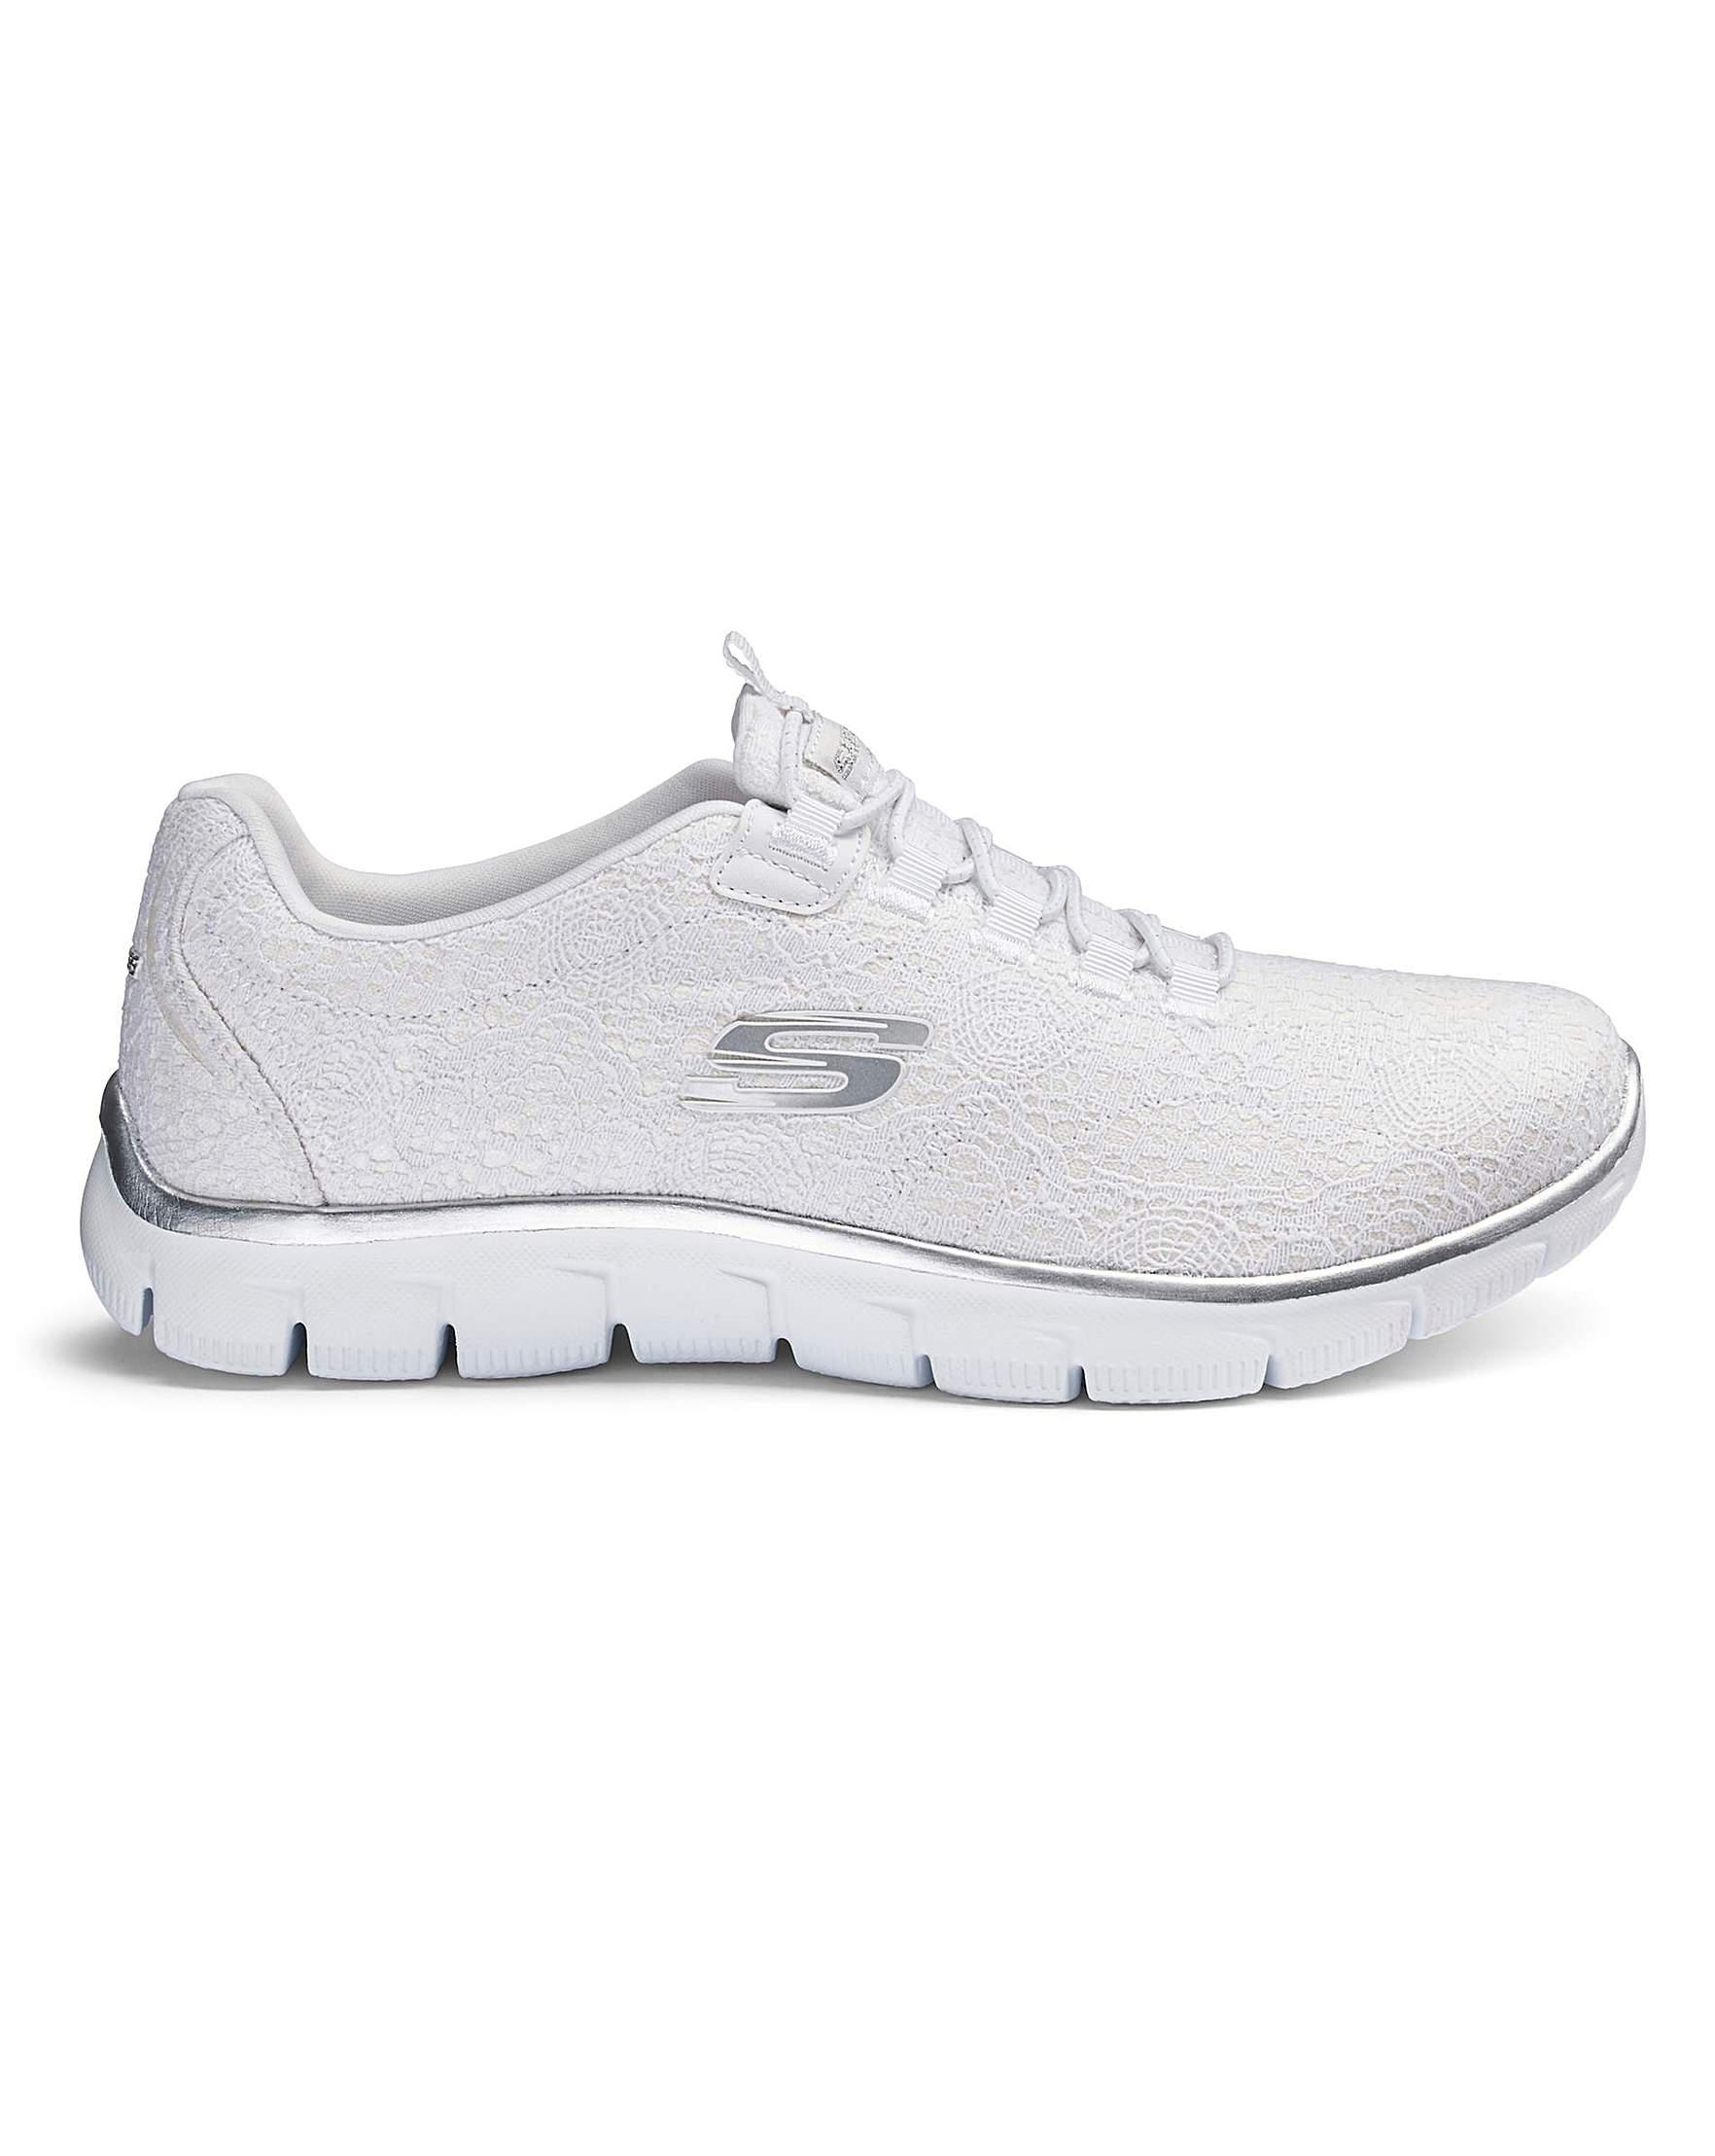 7b55e65dfd89 Skechers Empire Spring Glow Trainers in White for Men - Lyst